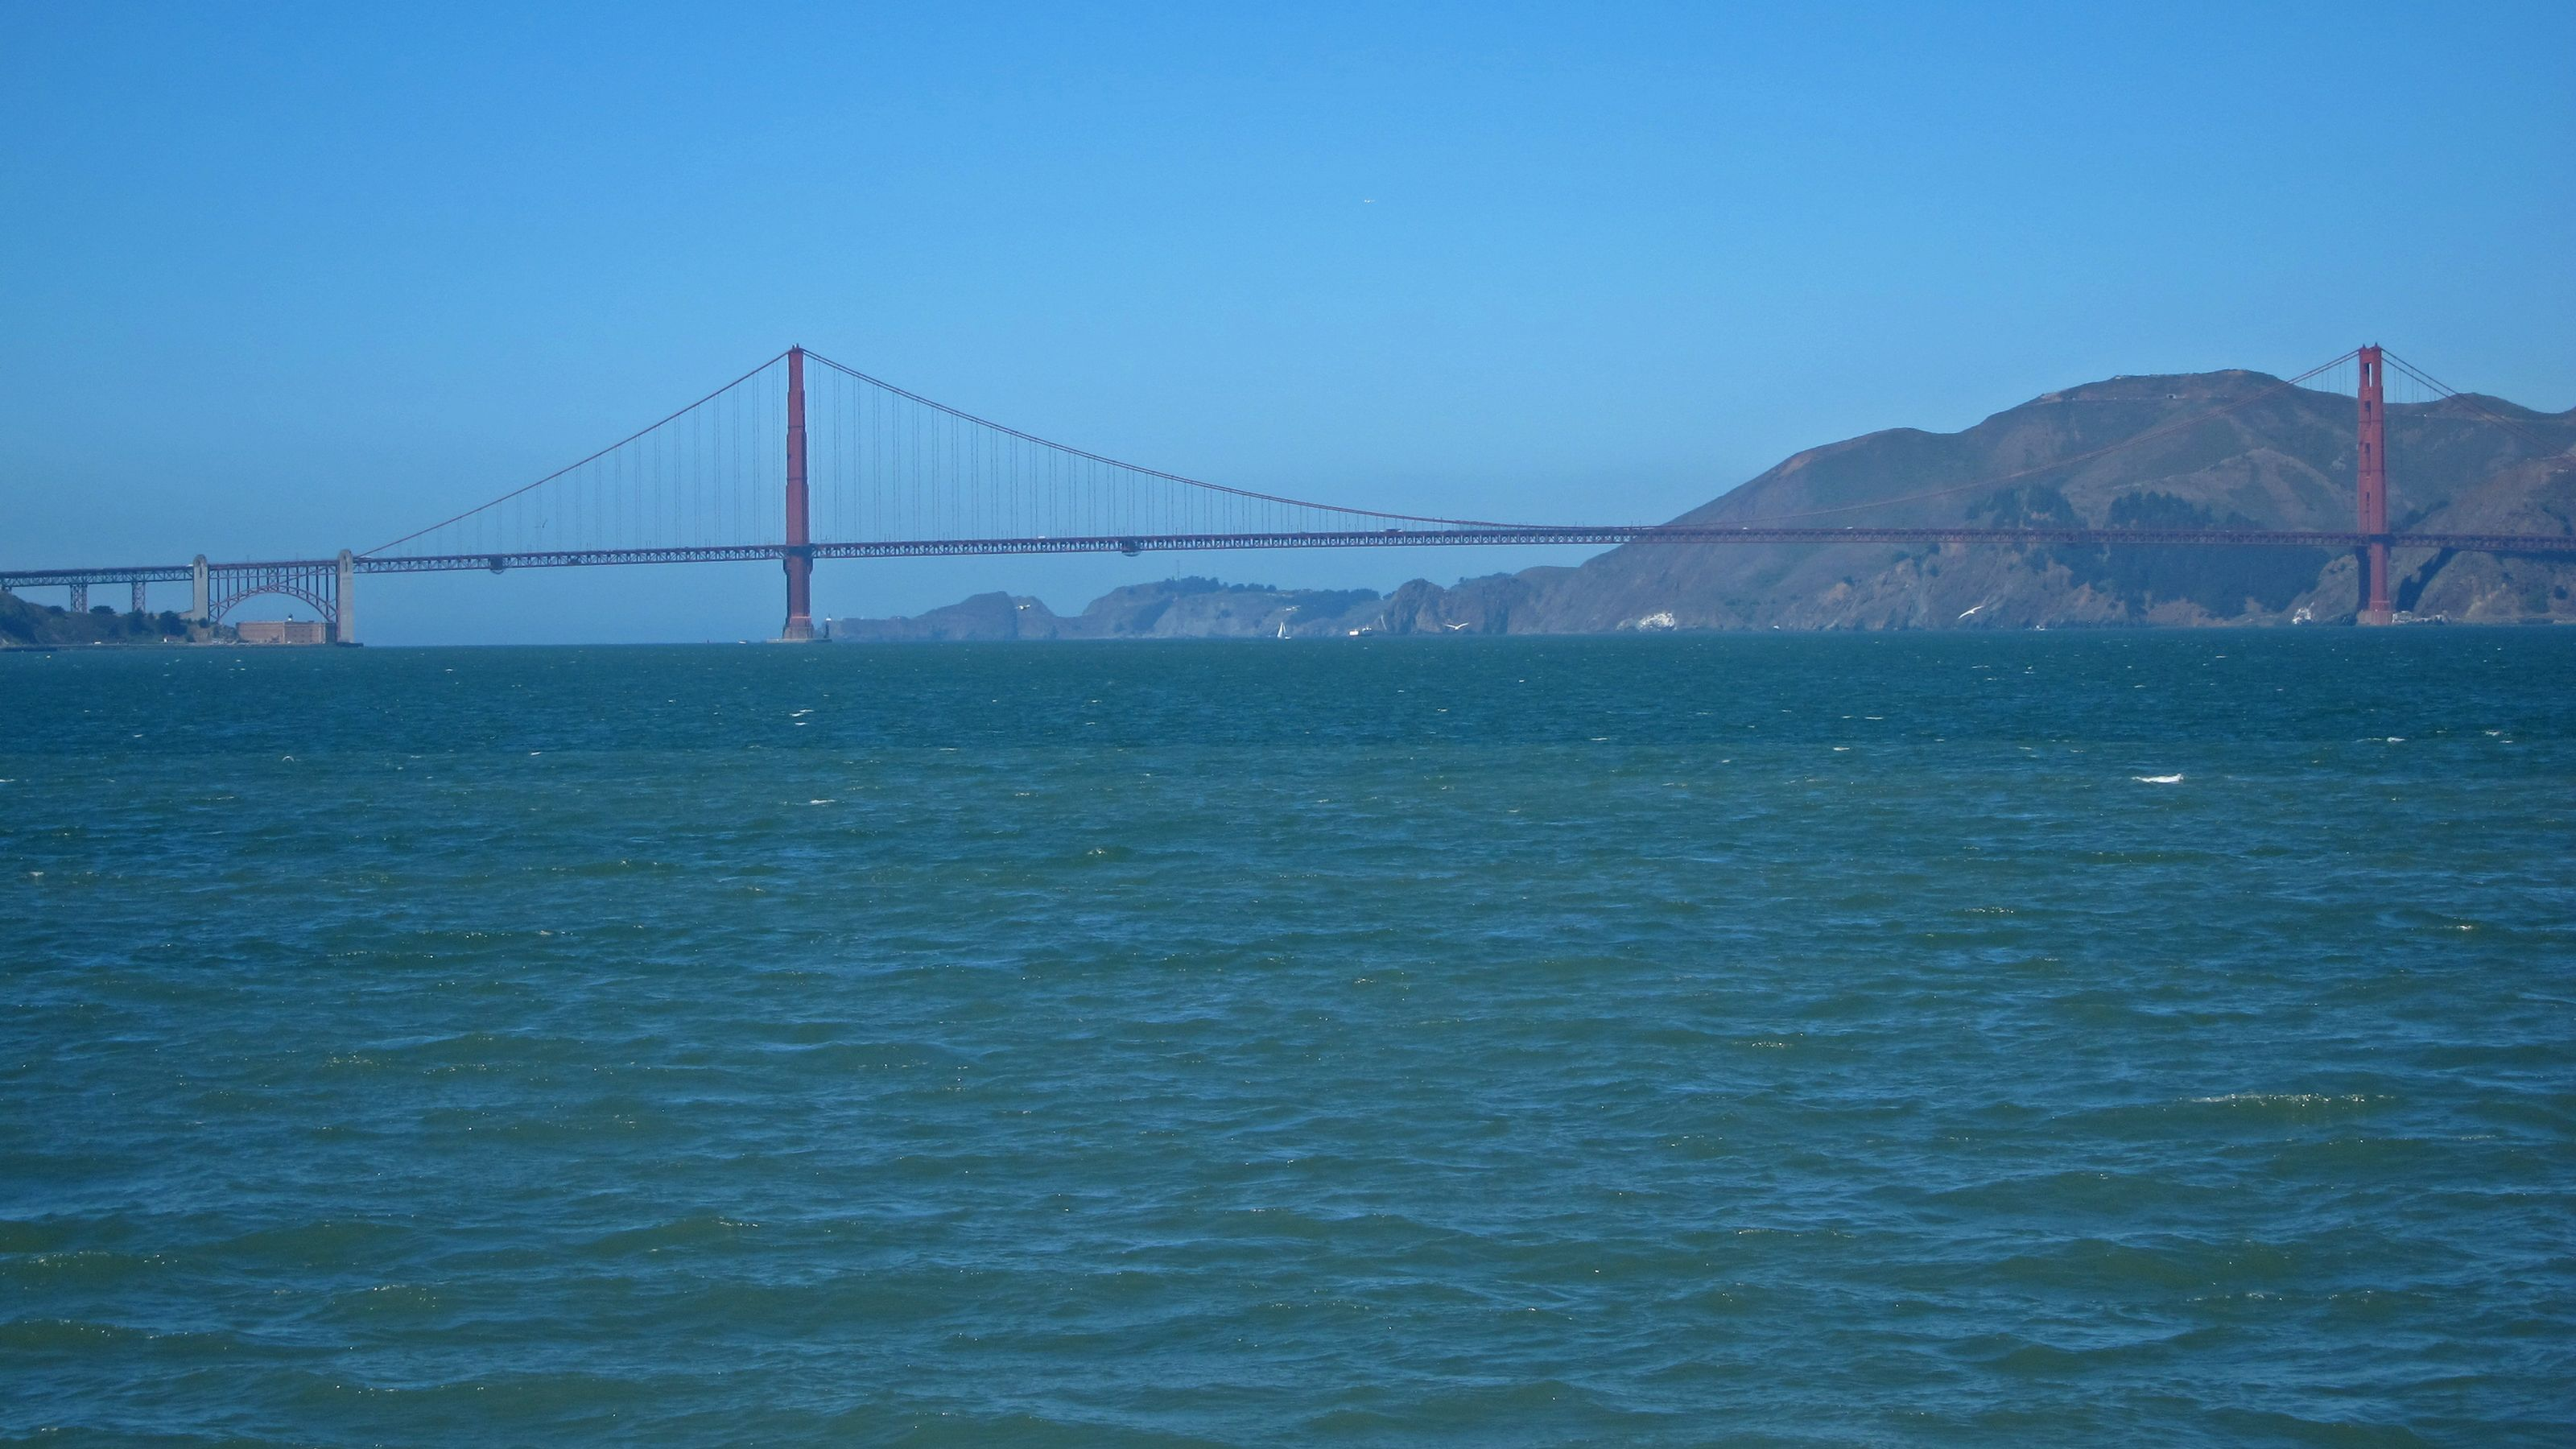 View of Golden Gate Bridge in the distances while on cruise